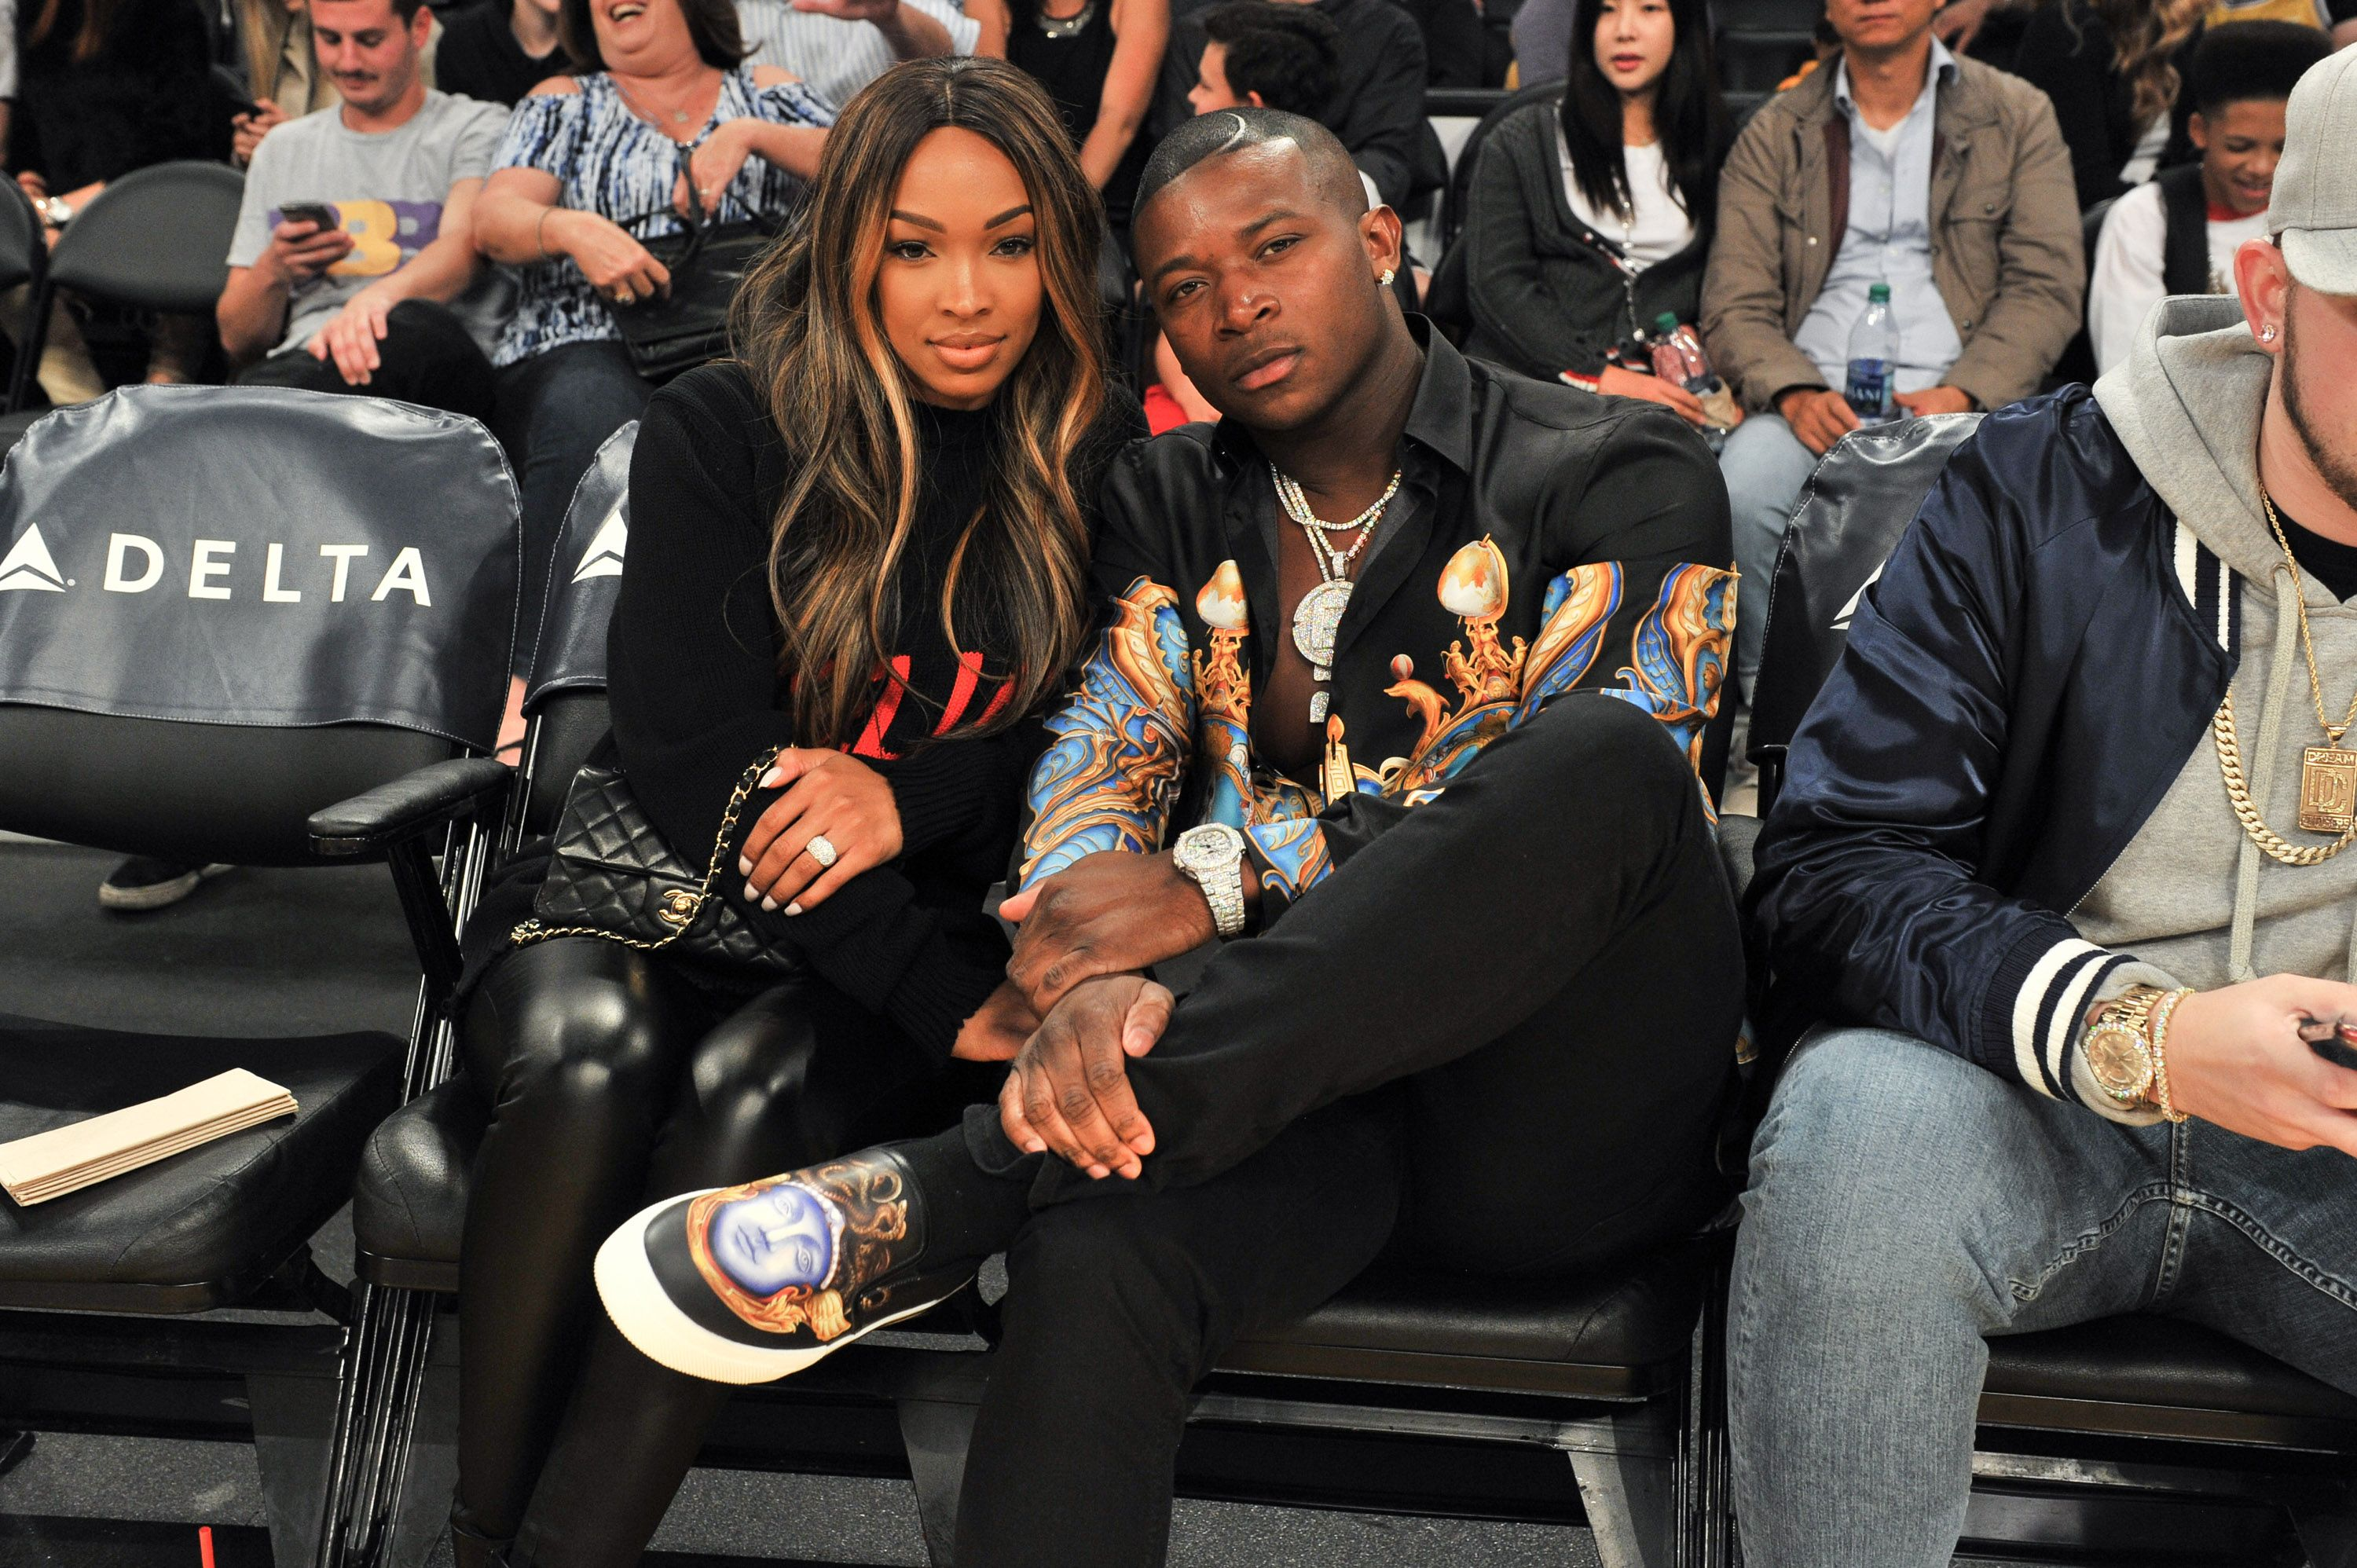 Malika Haqq and O.T. Genasis during a basketball game on Nov. 21, 2017 in California | Source: Getty Images